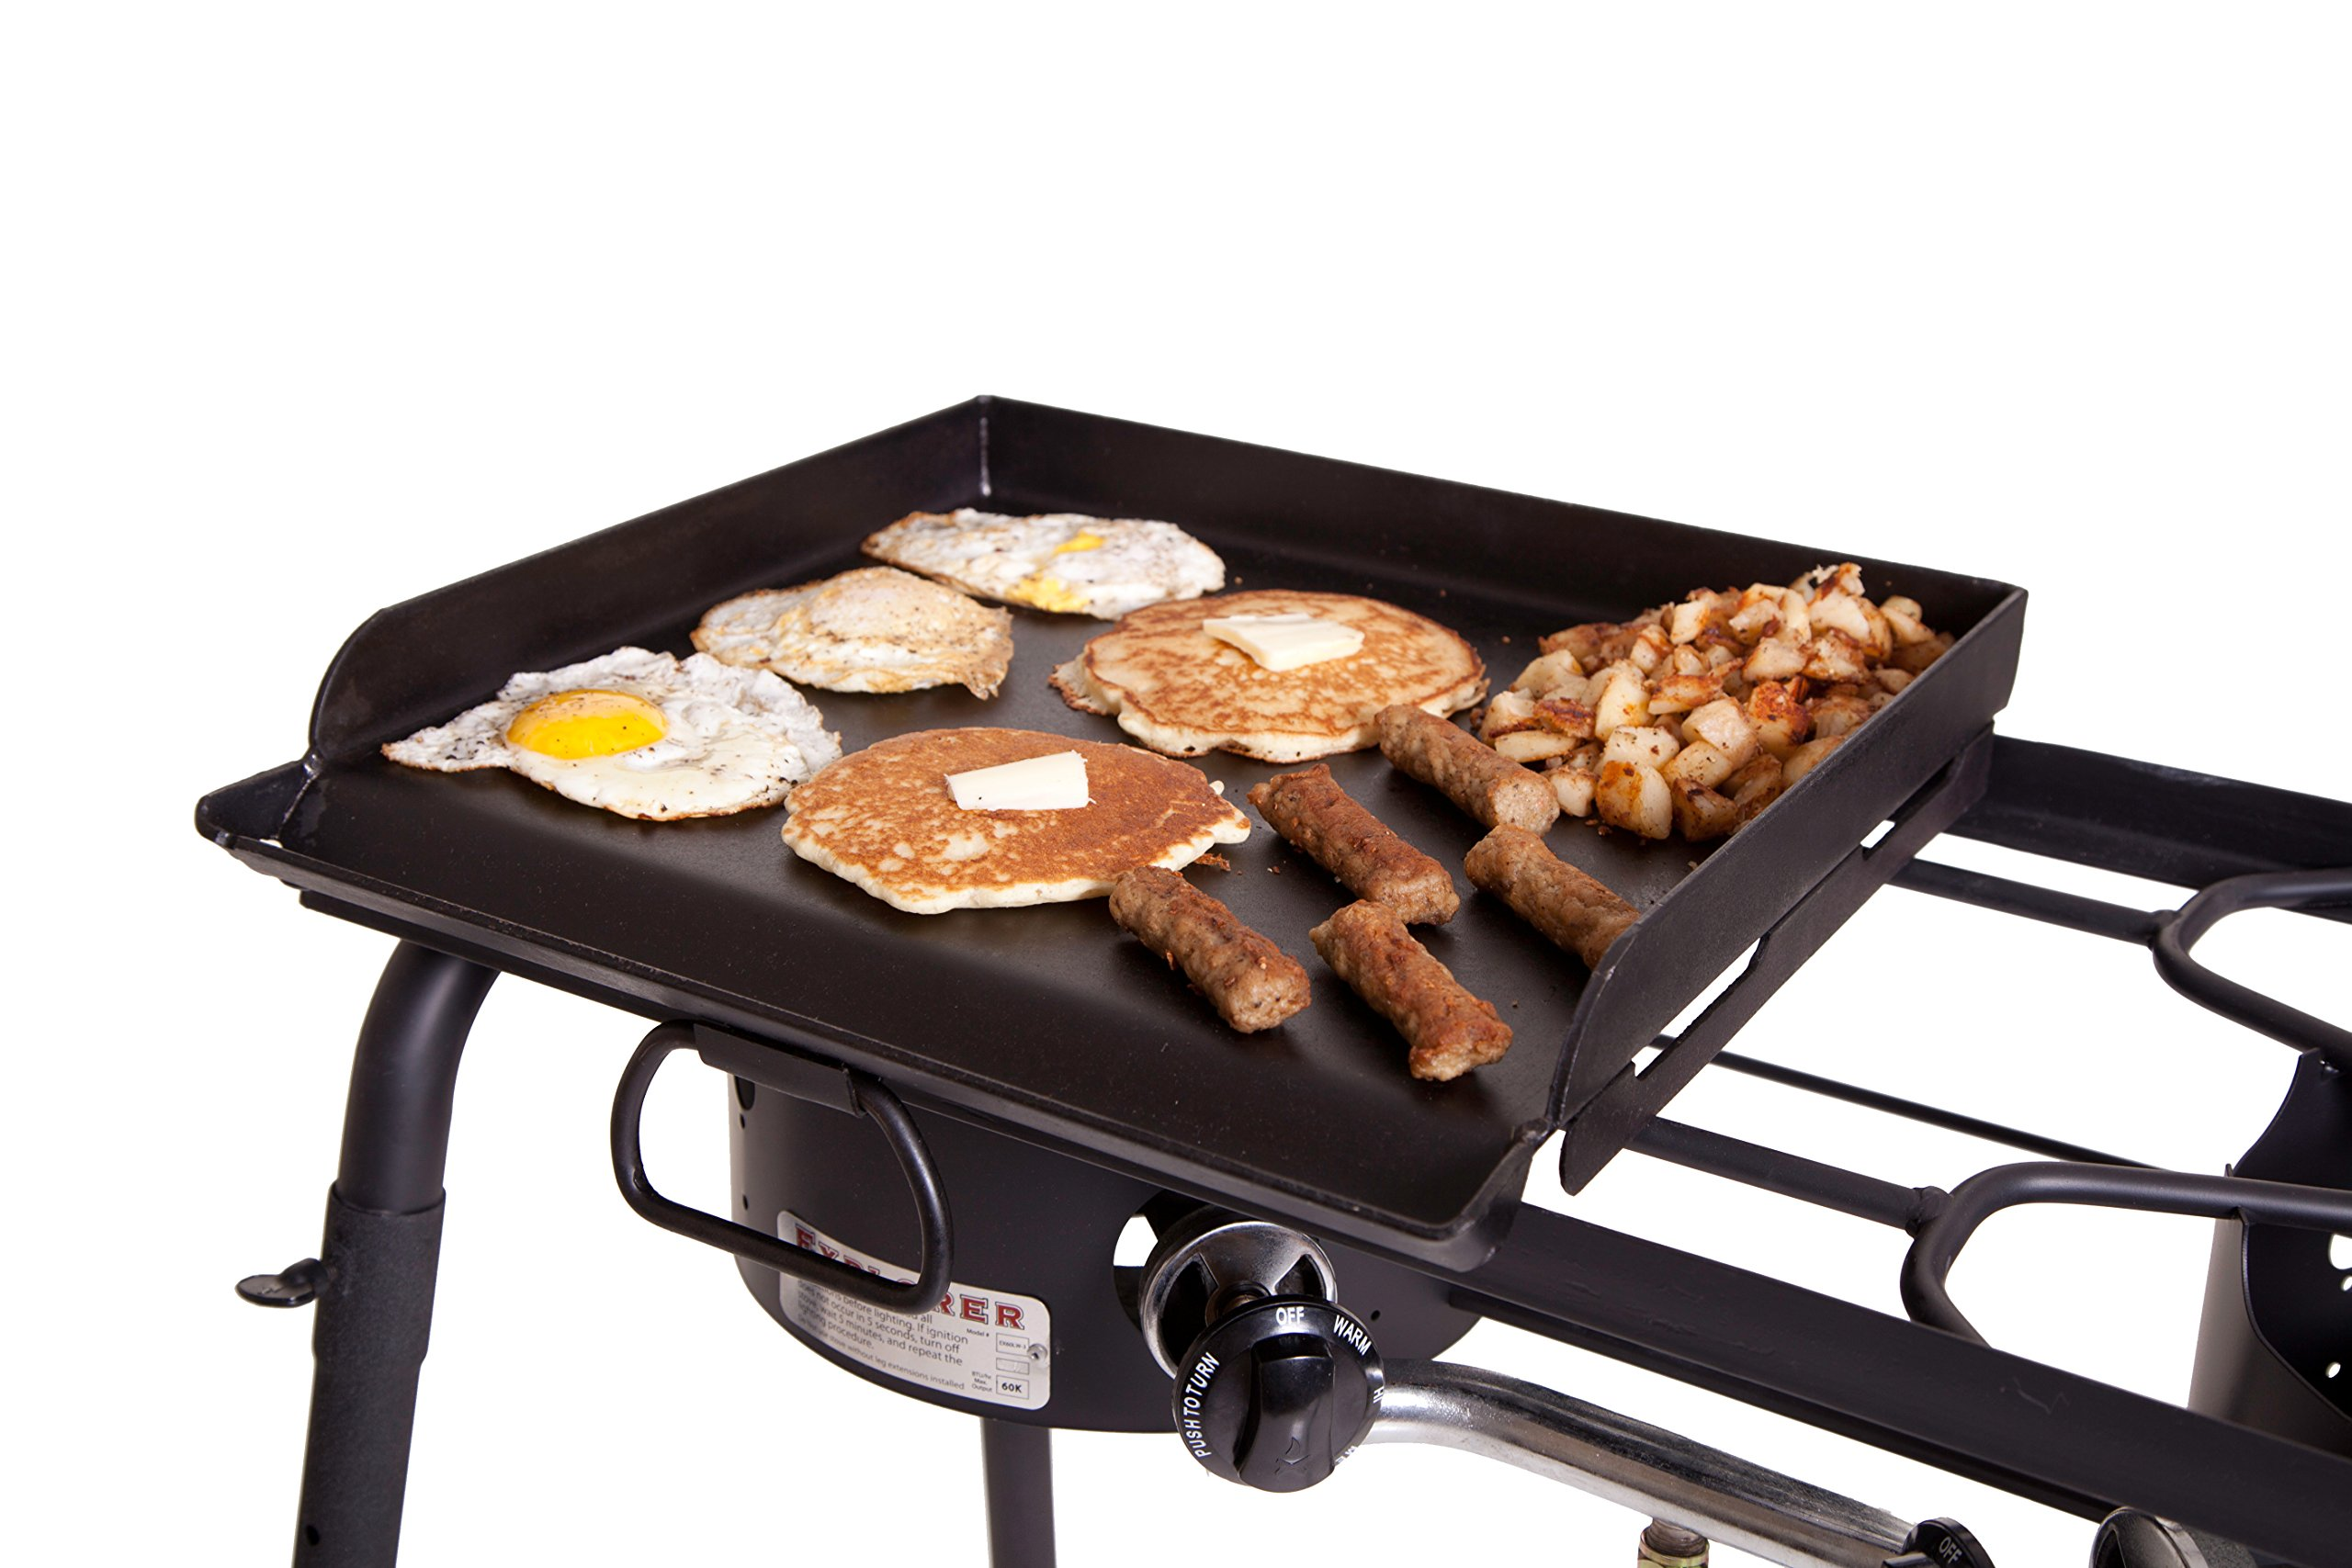 Camp Chef SG30 Professional Steel Fry Flat Top Griddle, Pre-Seasoned - Fits All Blue Flame Stoves (single burner)